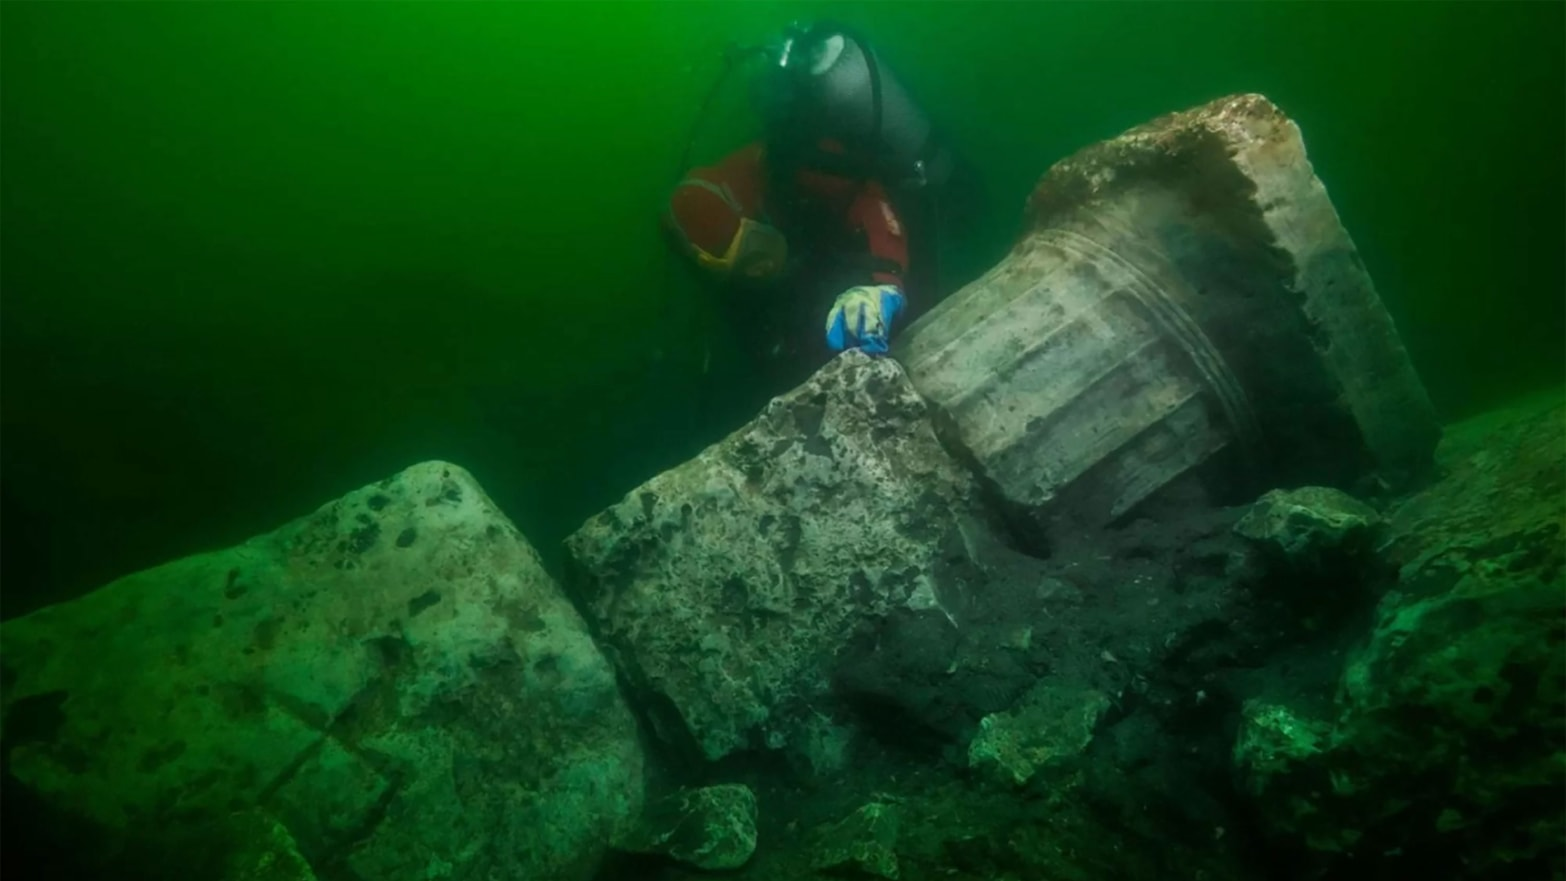 Heracleion: Treasure Trove Discovered at Egypt's Atlantis